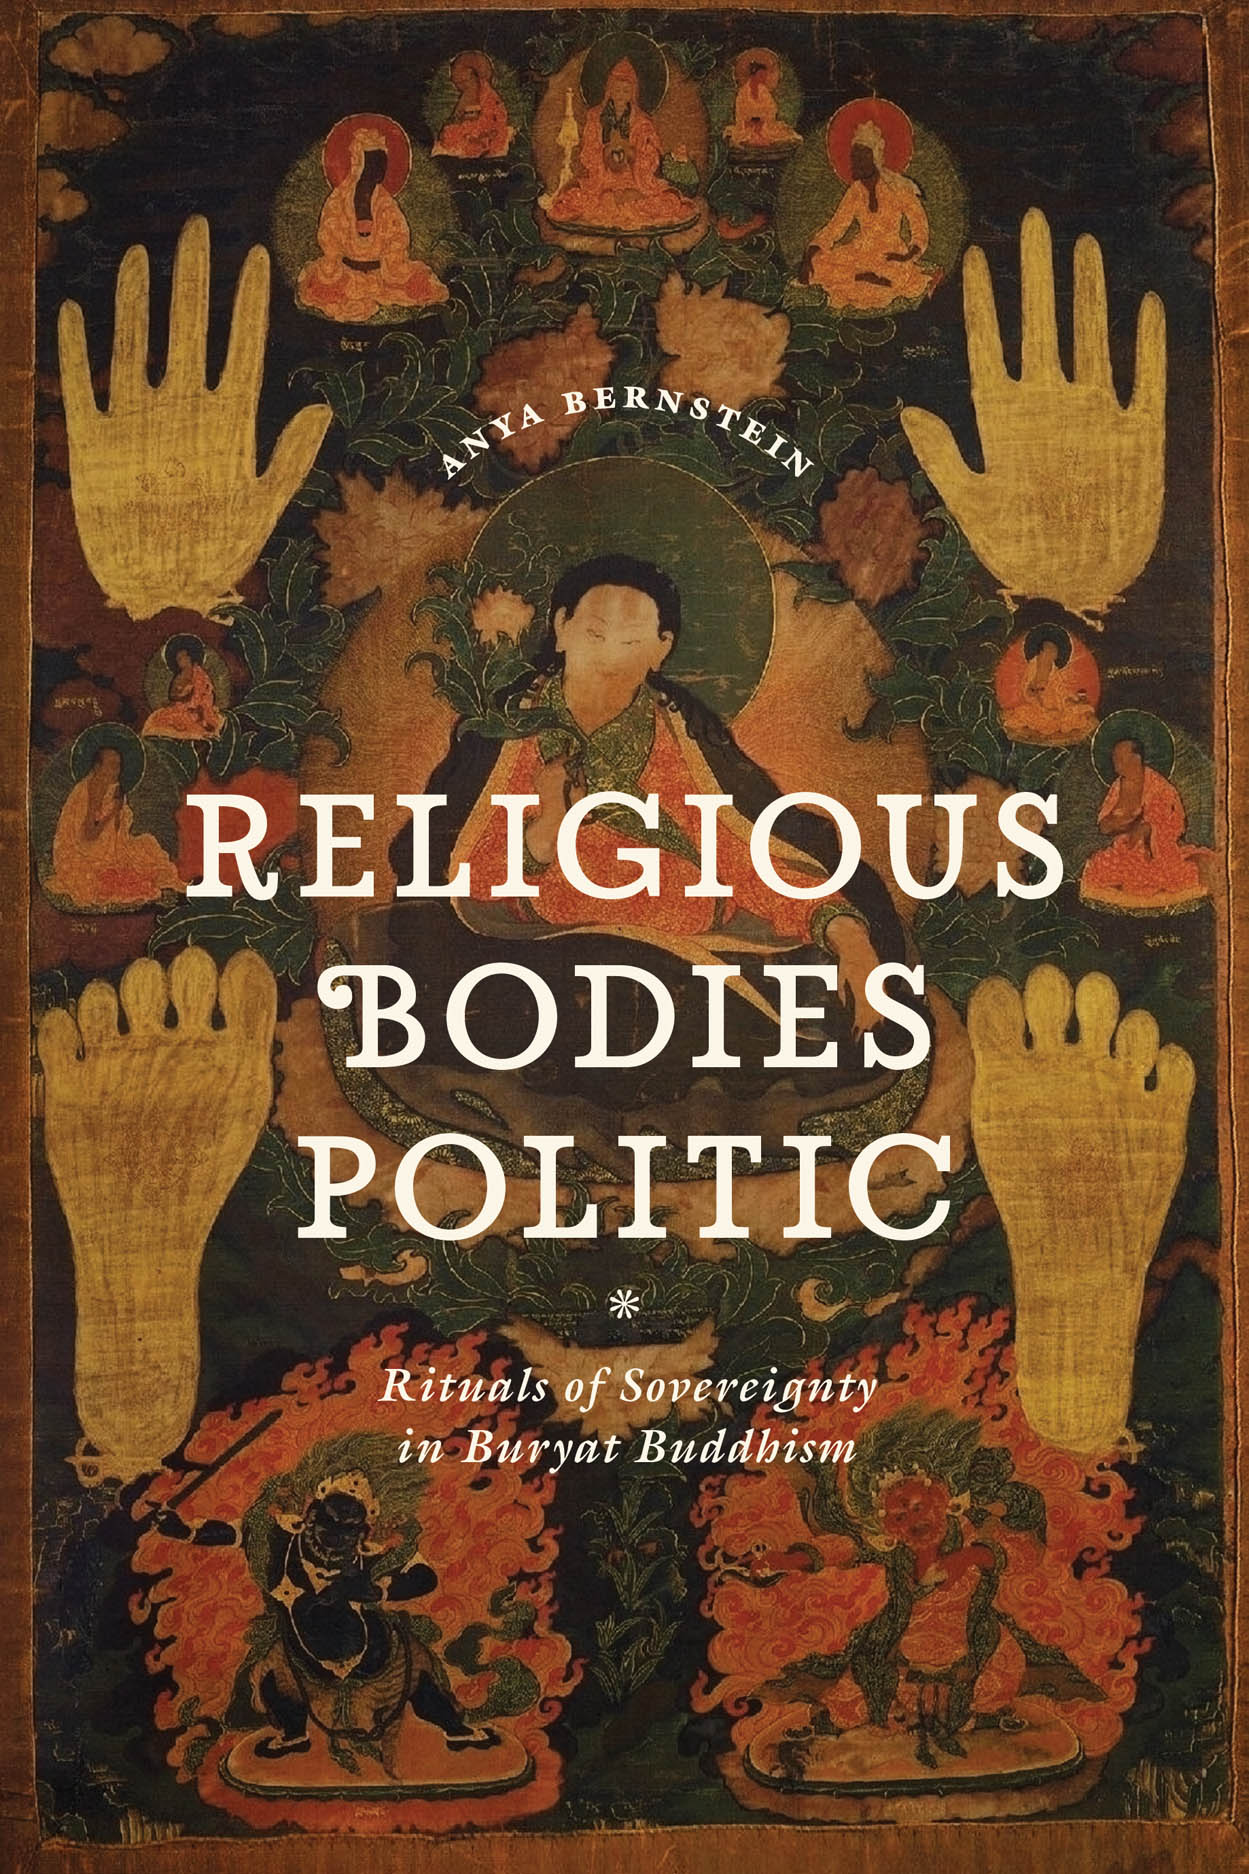 Religious Bodies Politic: Rituals of Sovereignty in Buryat Buddhism